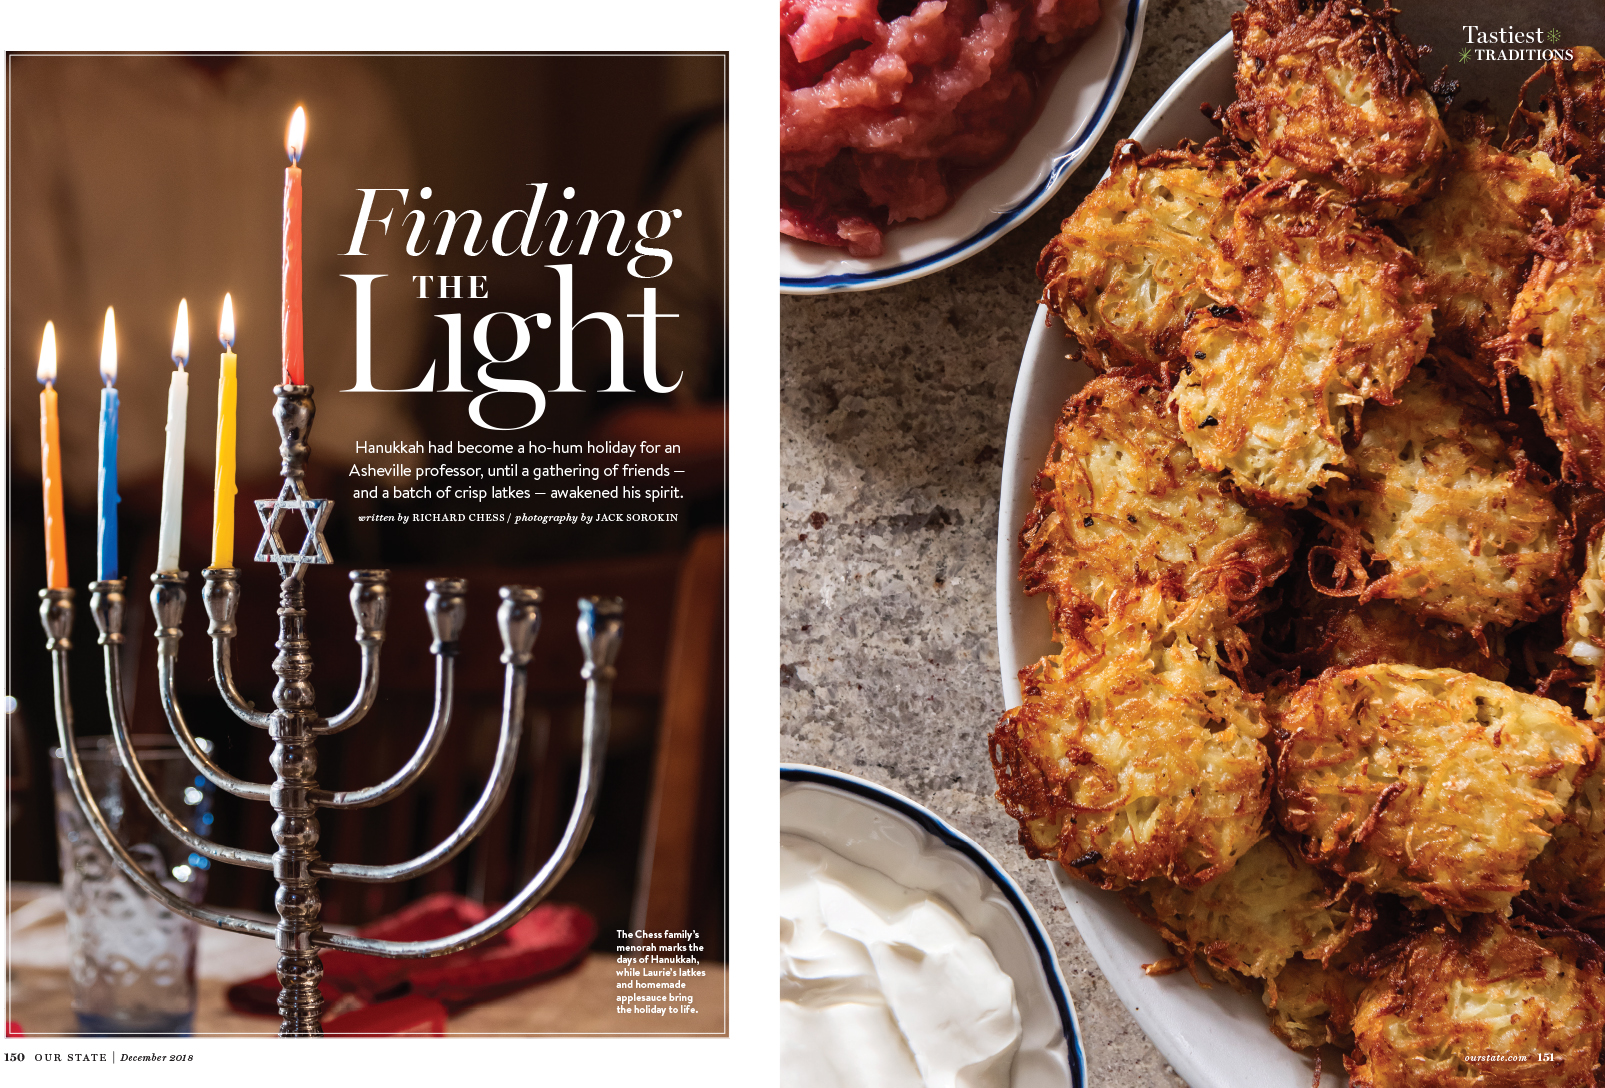 Our State Hanukkah Jewish Winter Magazine Jack Sorokin Photographer Photography Western North Carolina Asheville